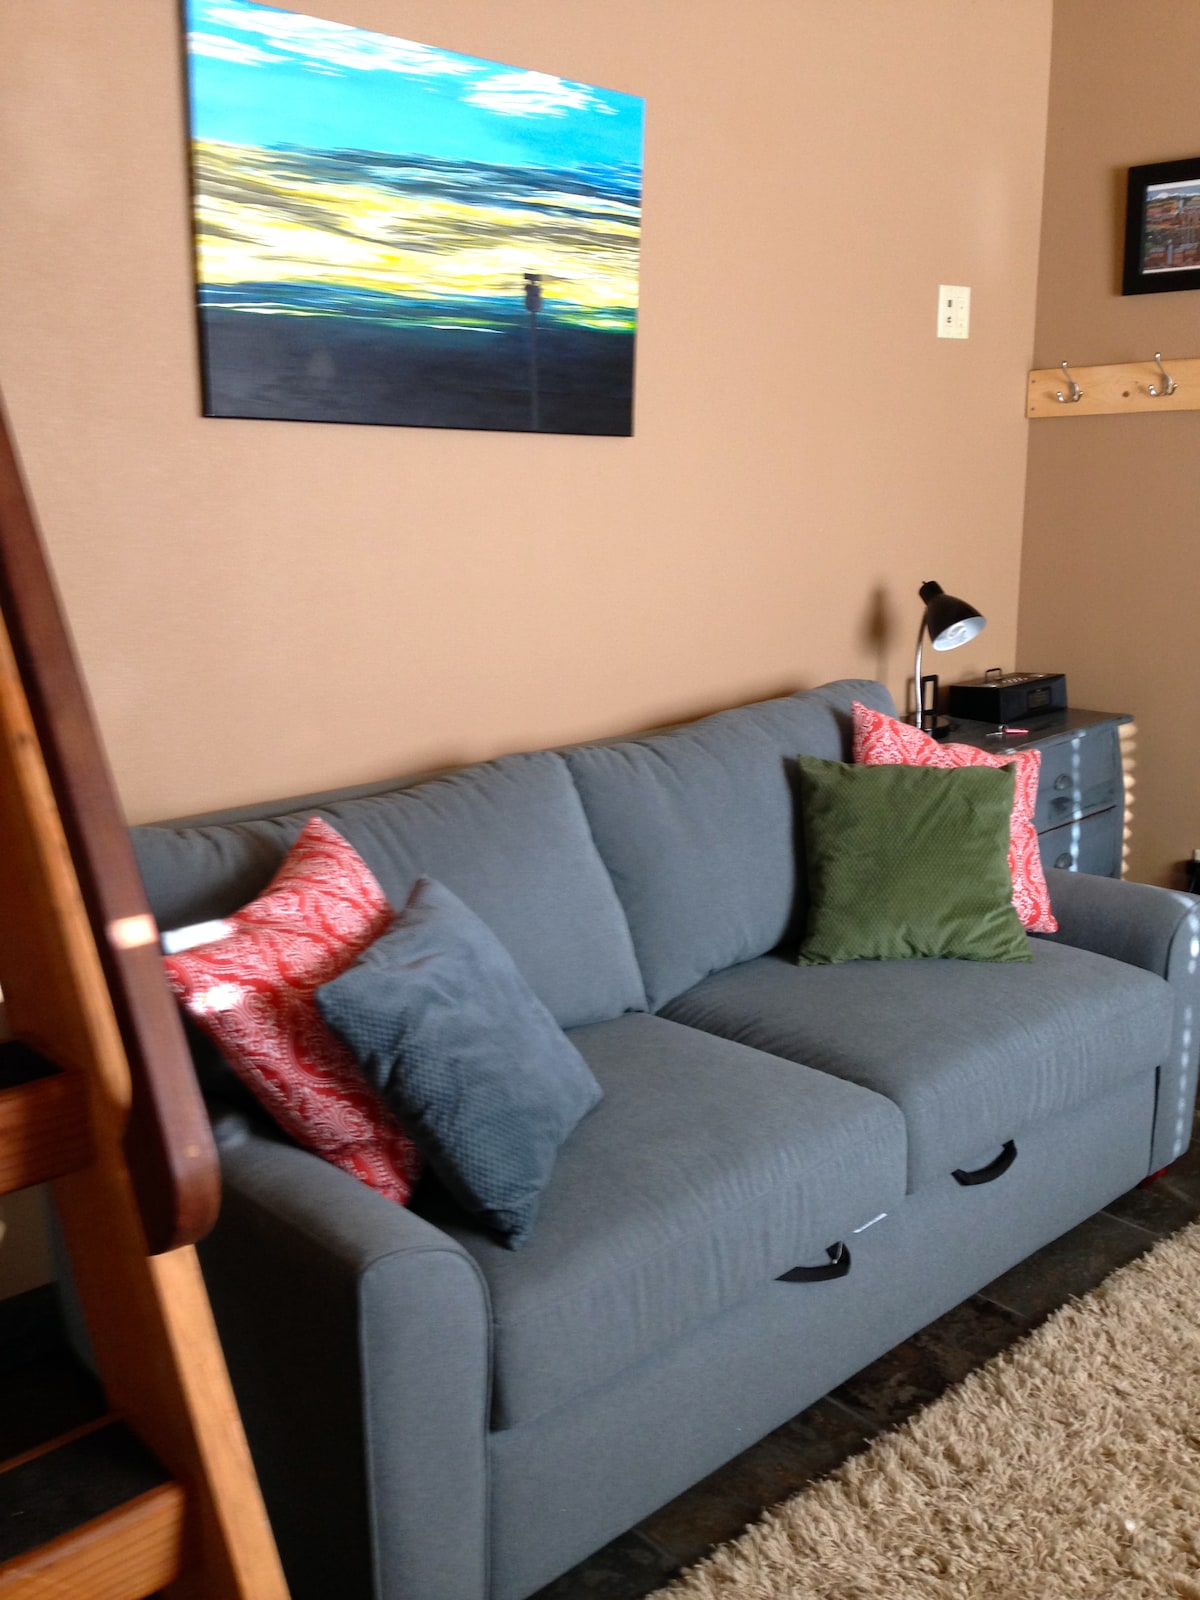 Our new American Leather sleeper sofa.  Provides a nice place to kick back at the end of the day!